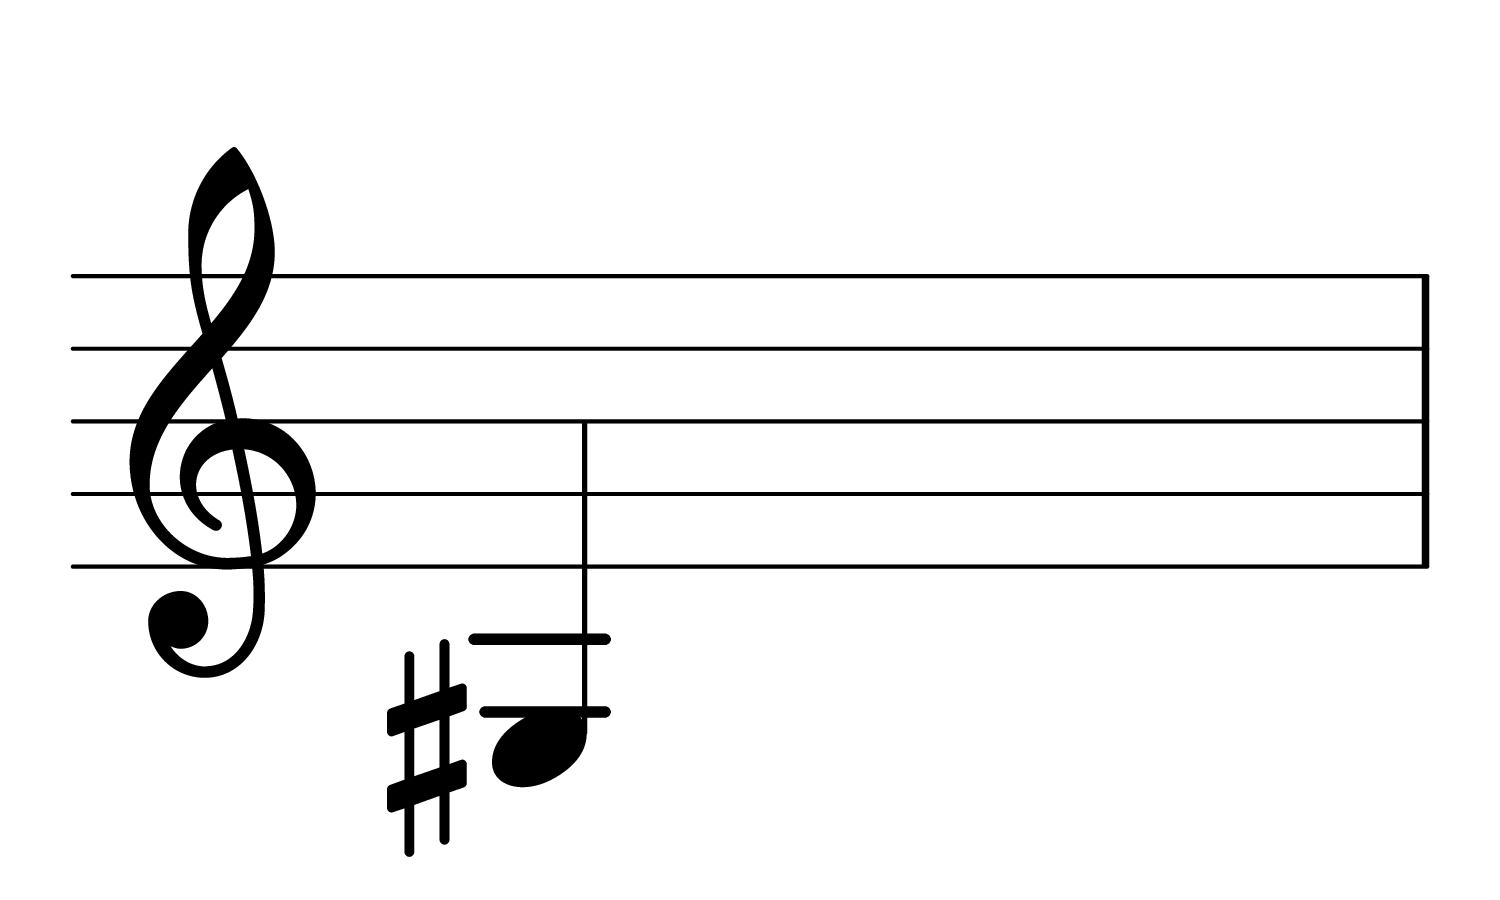 The Note G#2 on the treble clef